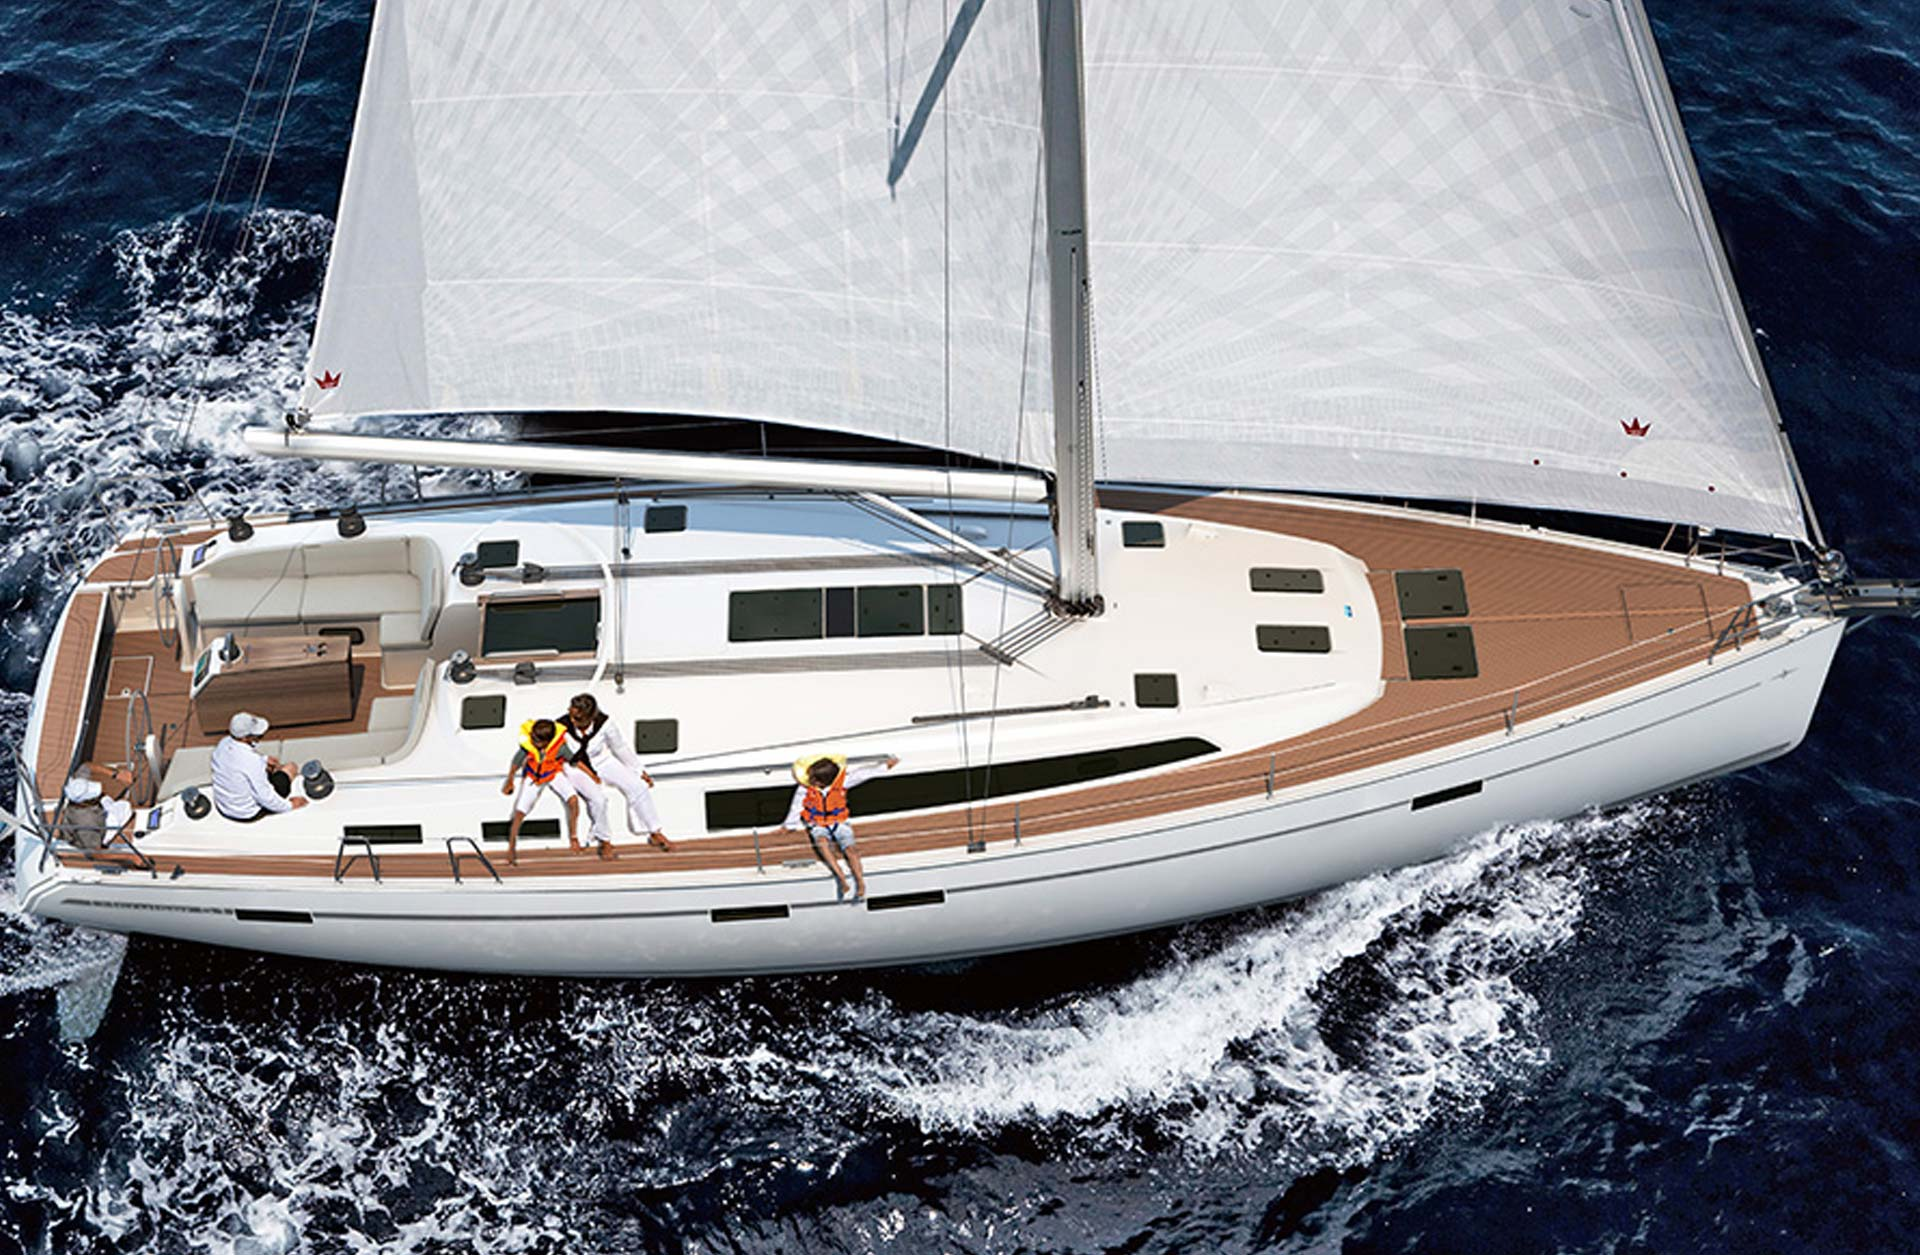 Bavaria Cruiser 51 Boats for Sale - EXTERIOR